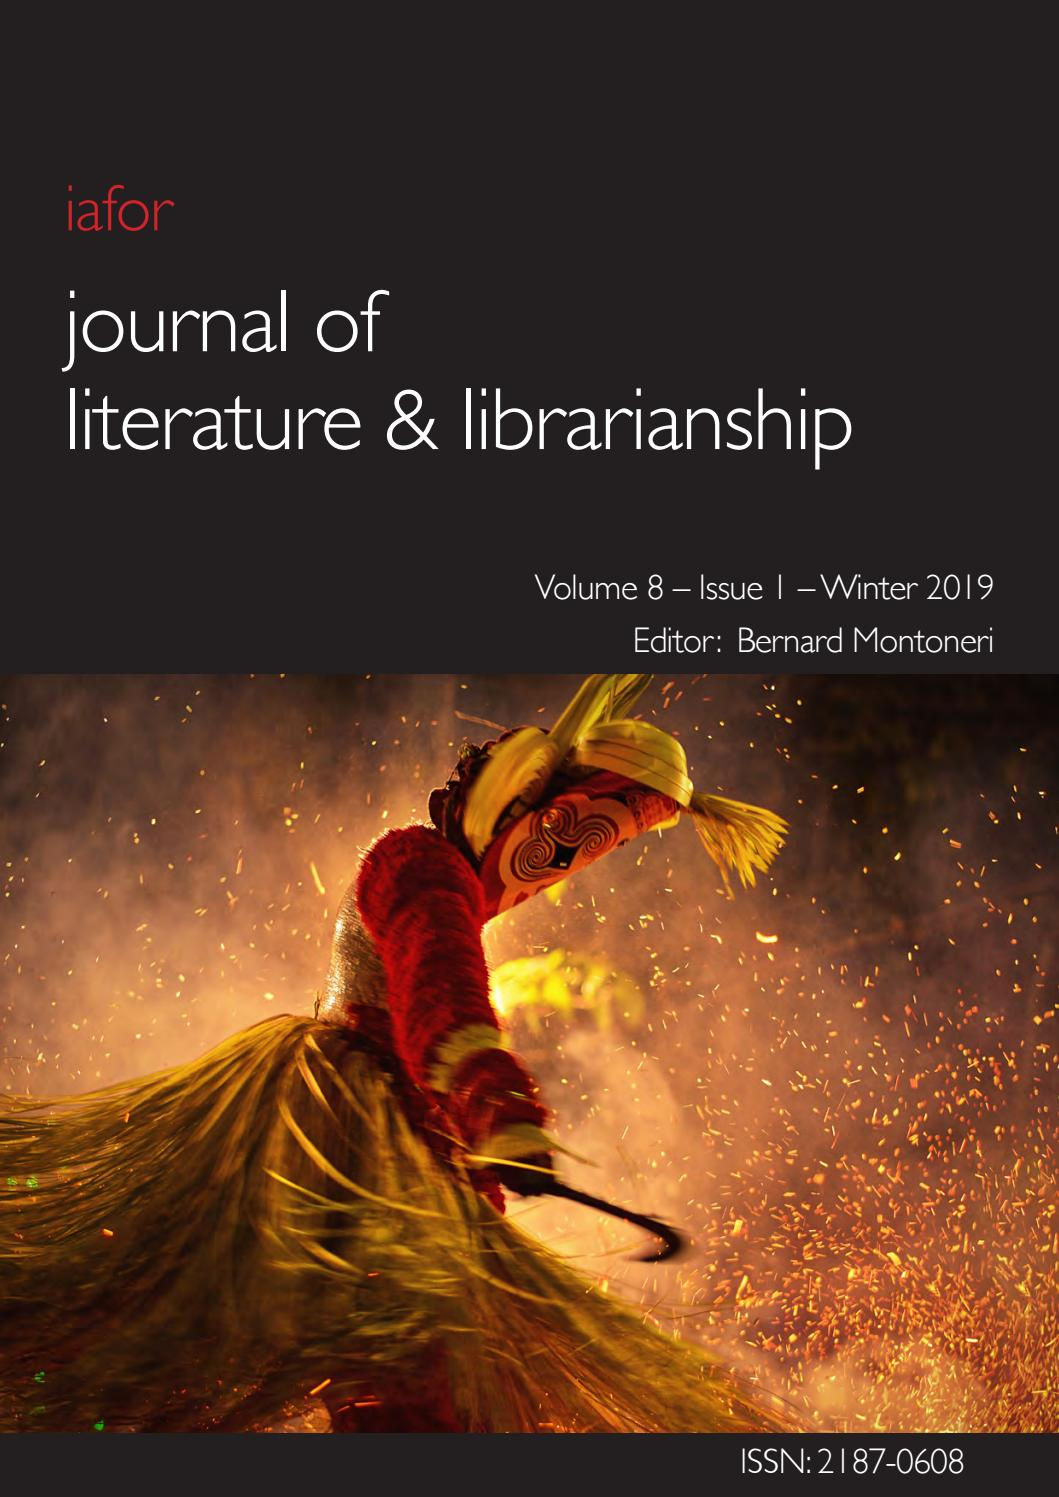 Iafor Journal Of Literature Librarianship Volume 8 Issue 1 By Iafor Issuu